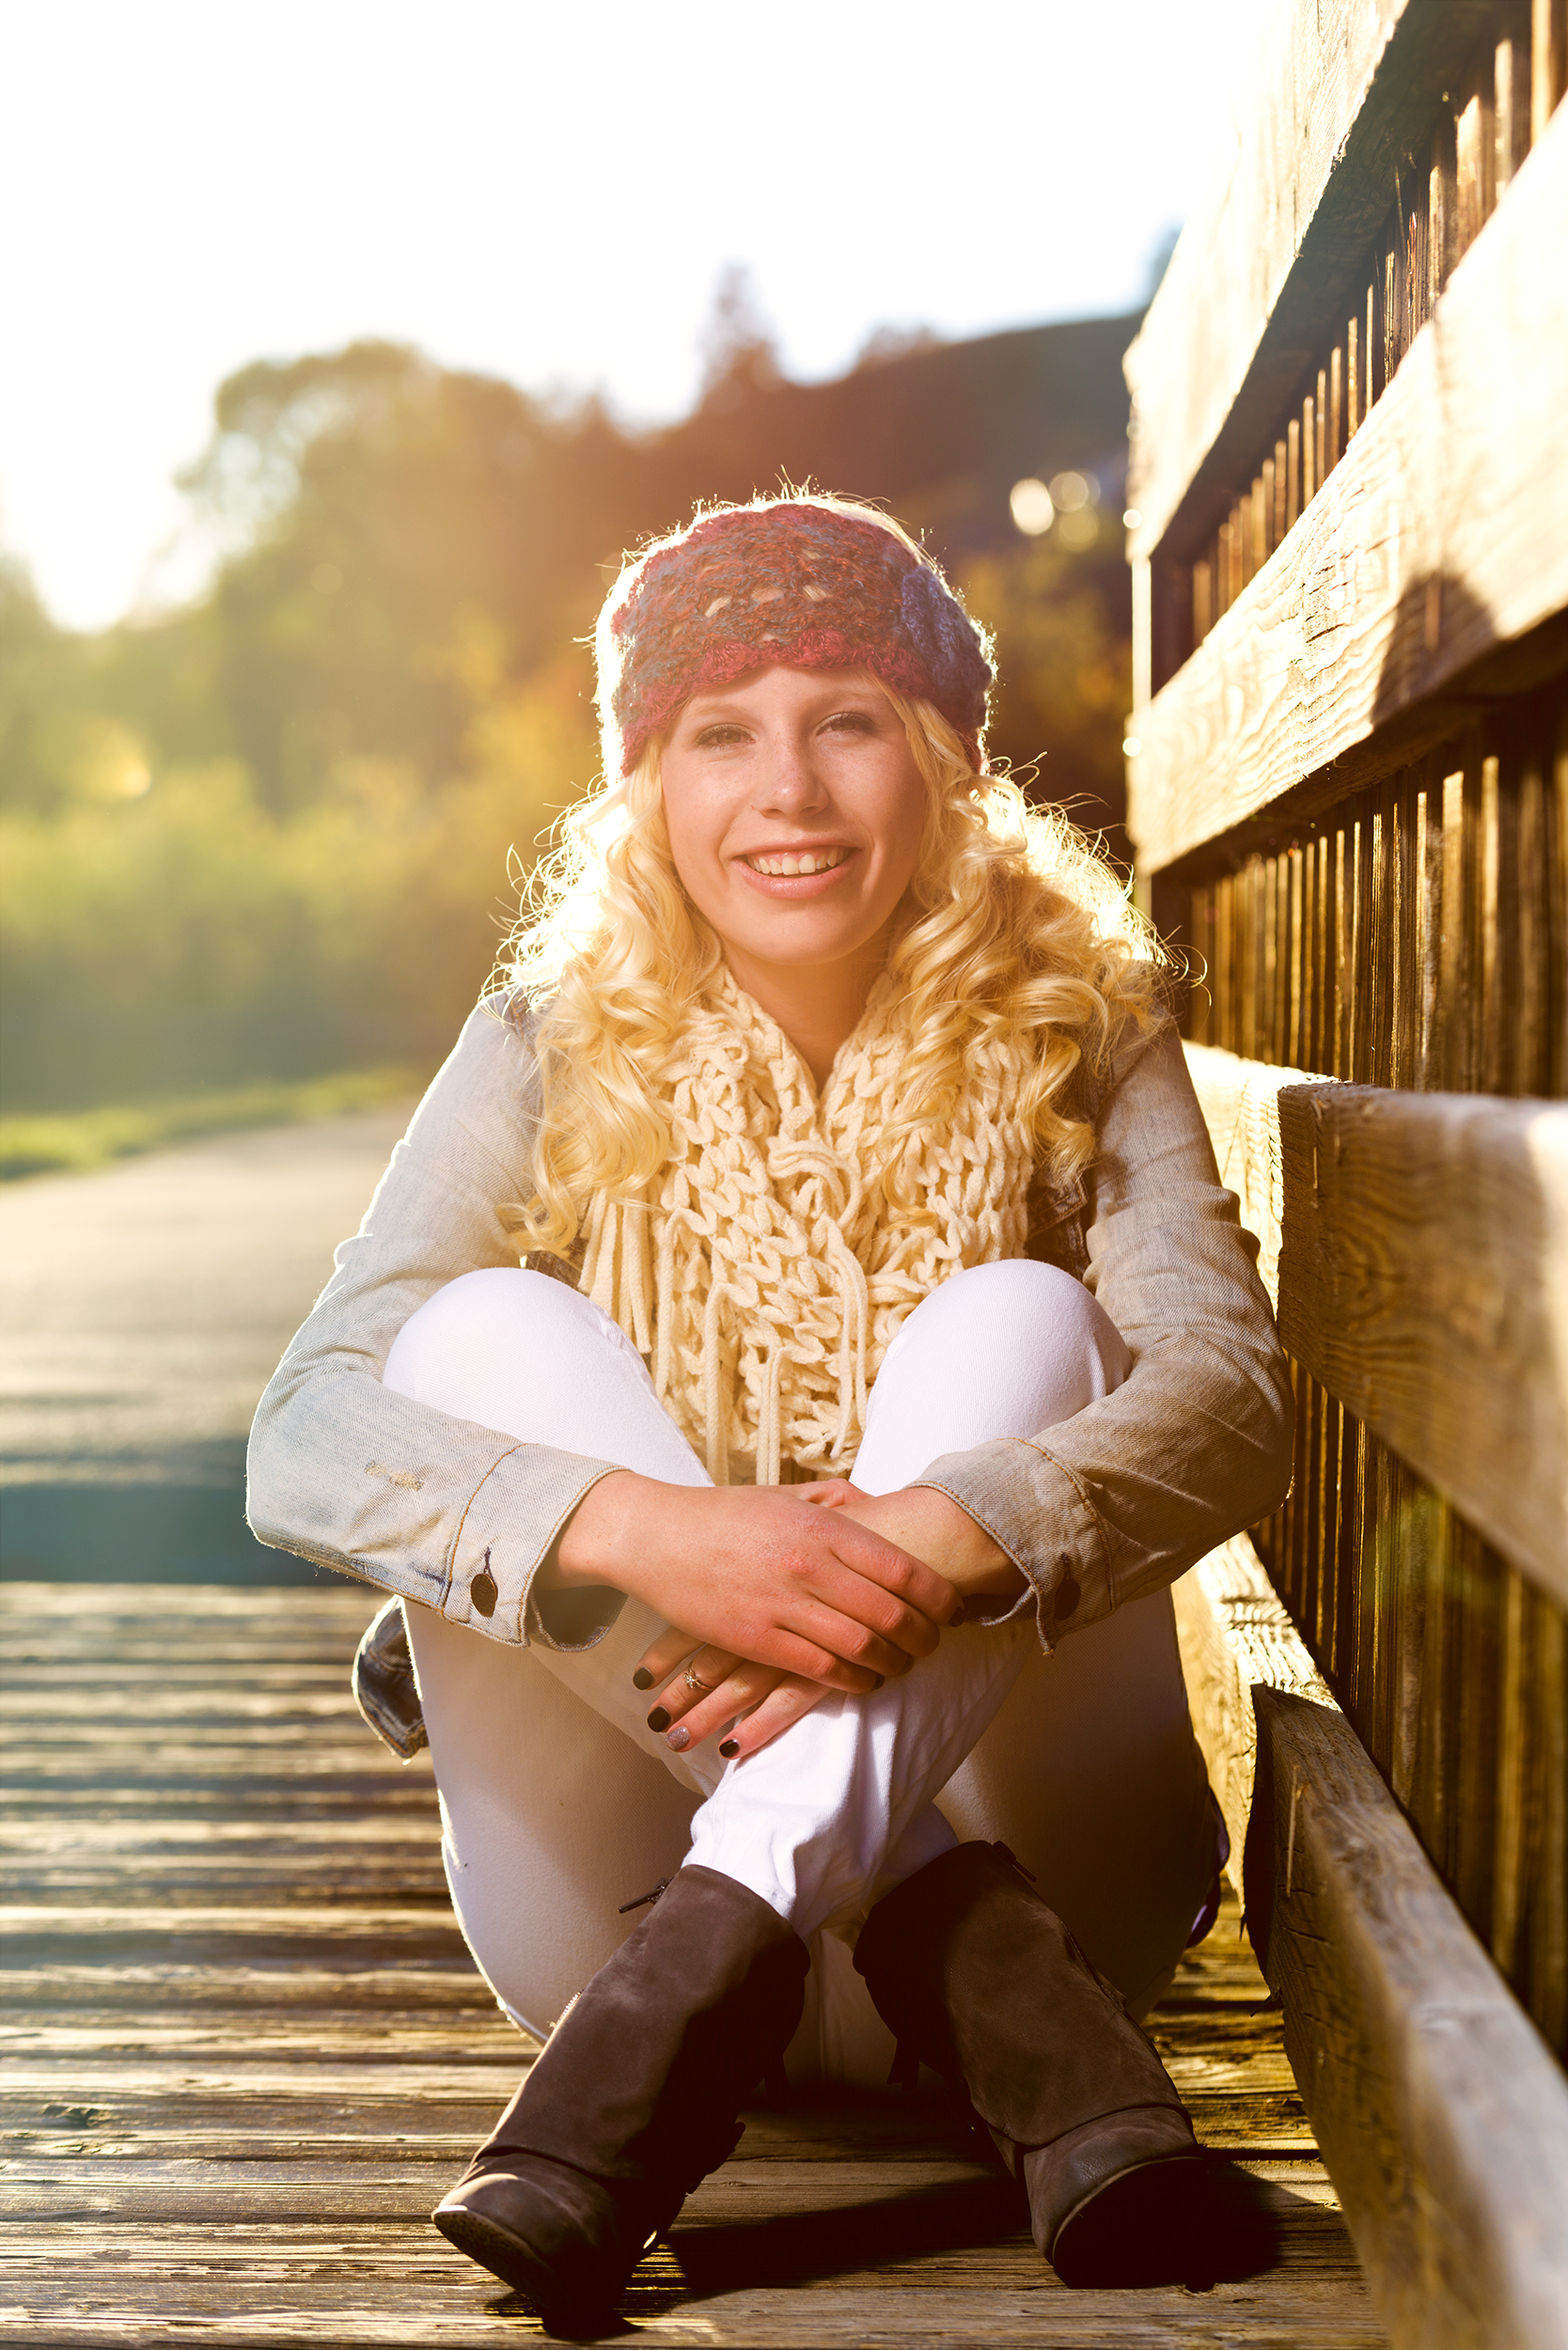 Fashion lifestyle photo with a teenage girl in a handmade headband and scarf during sunset